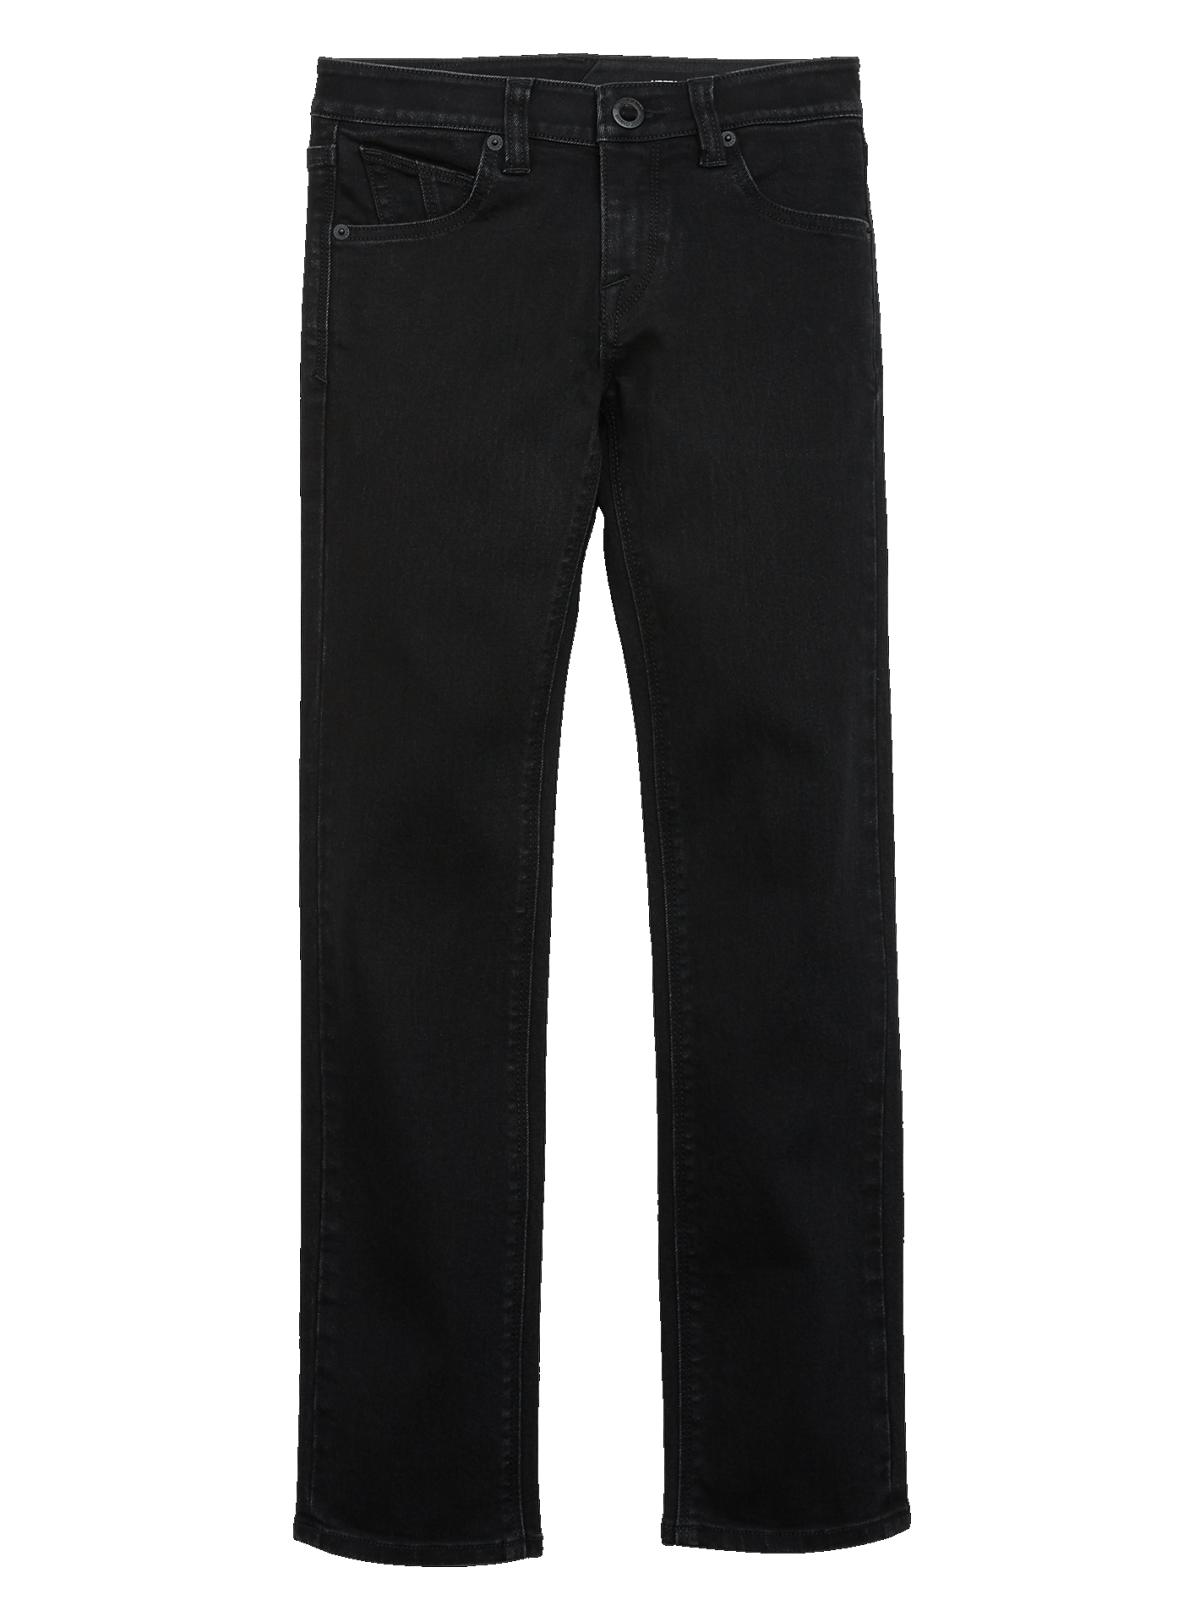 Volcom Boys Vorta Denim Black Out